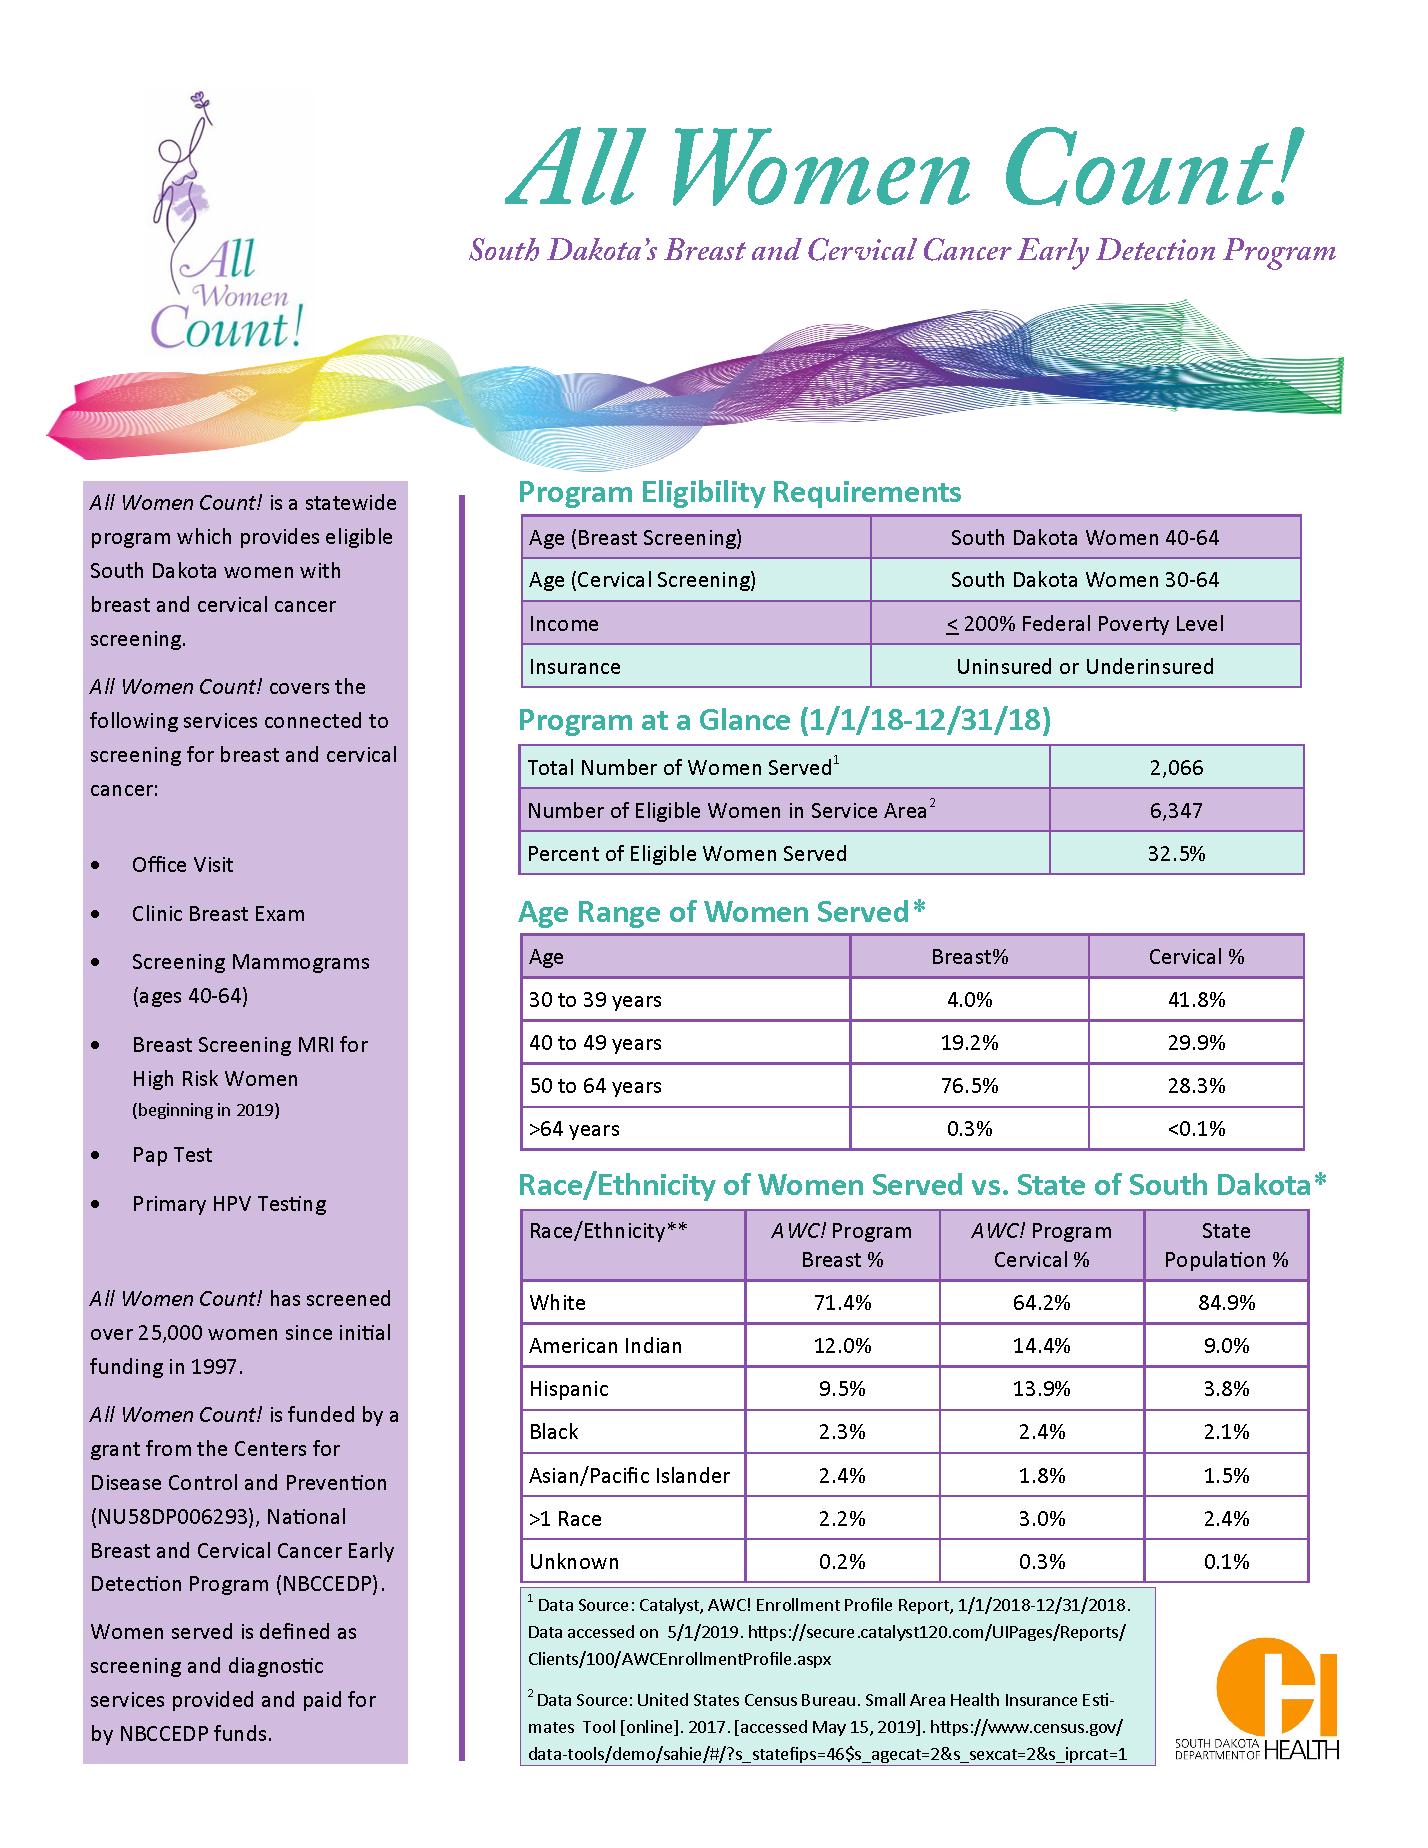 South Dakota Breast and Cervical Cancer Early Detection Program Stakeholder Report